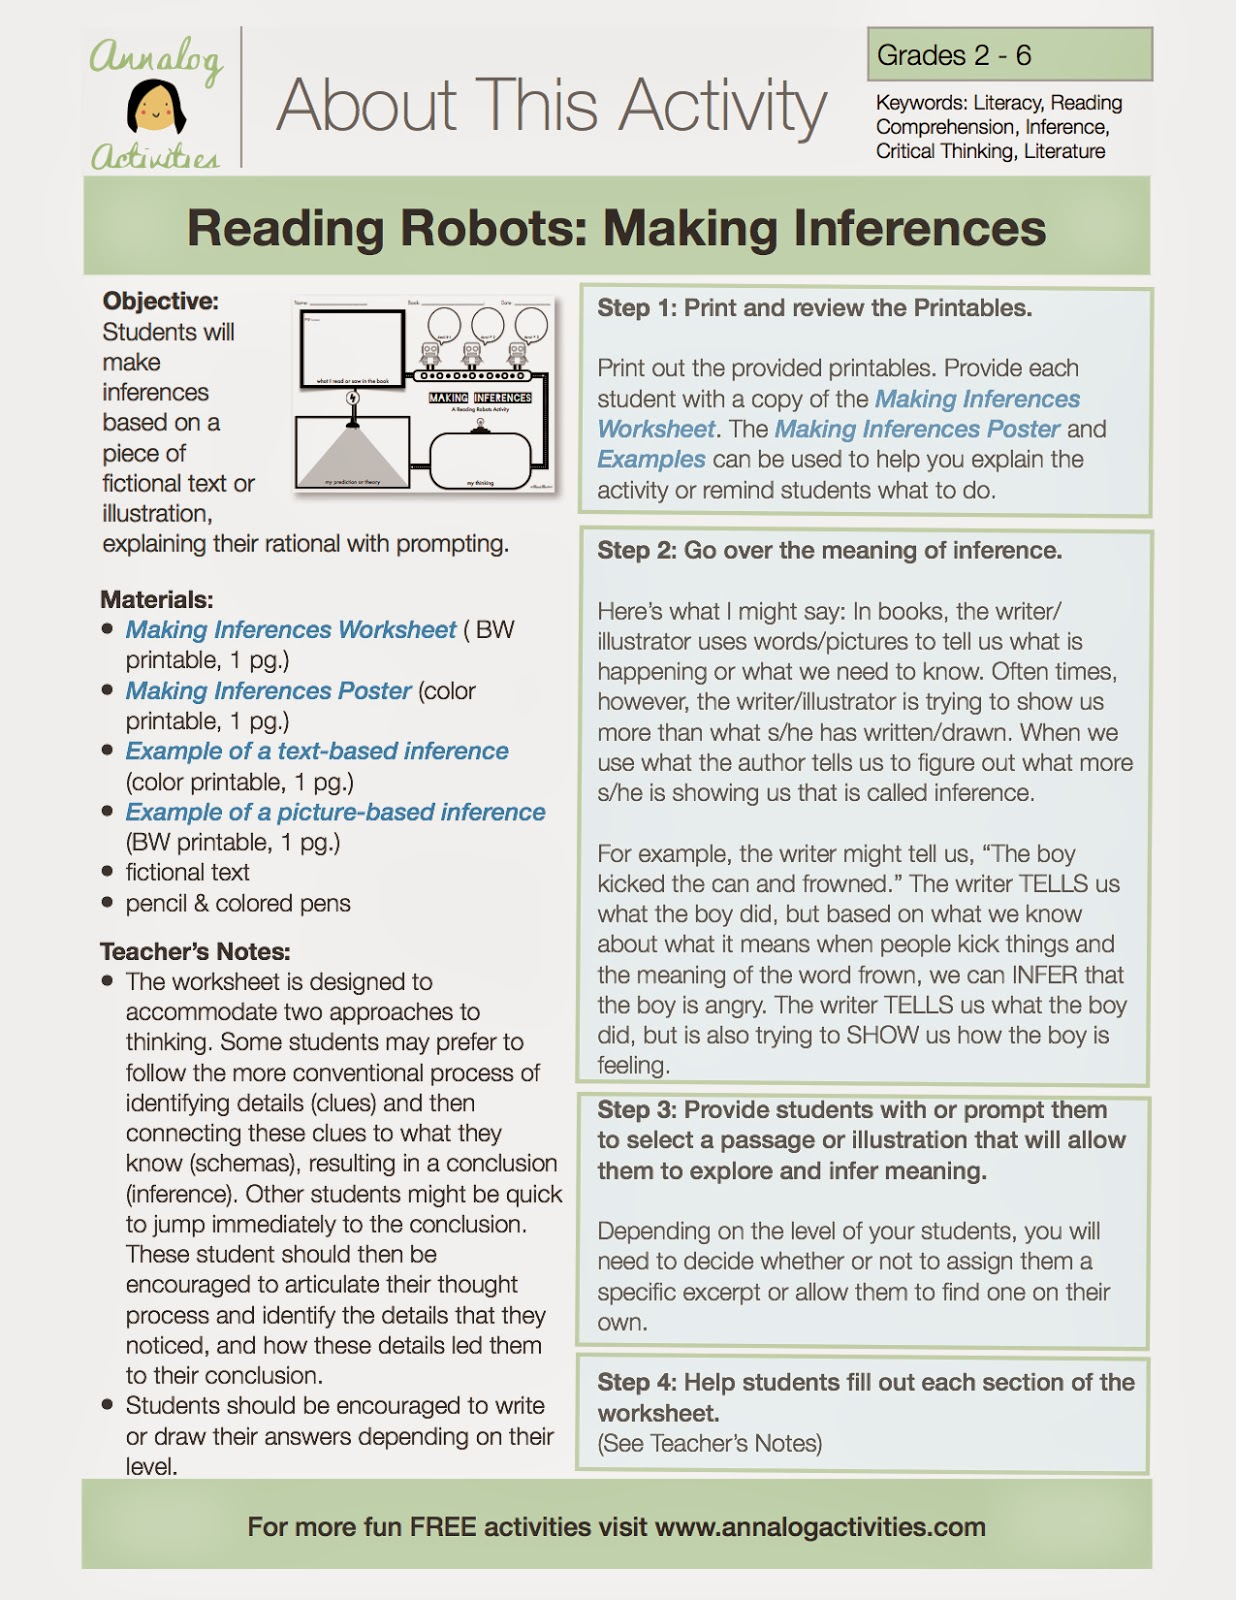 medium resolution of Annalog Activities: This Week's Freebie: Making Inferences with the Reading  Robots